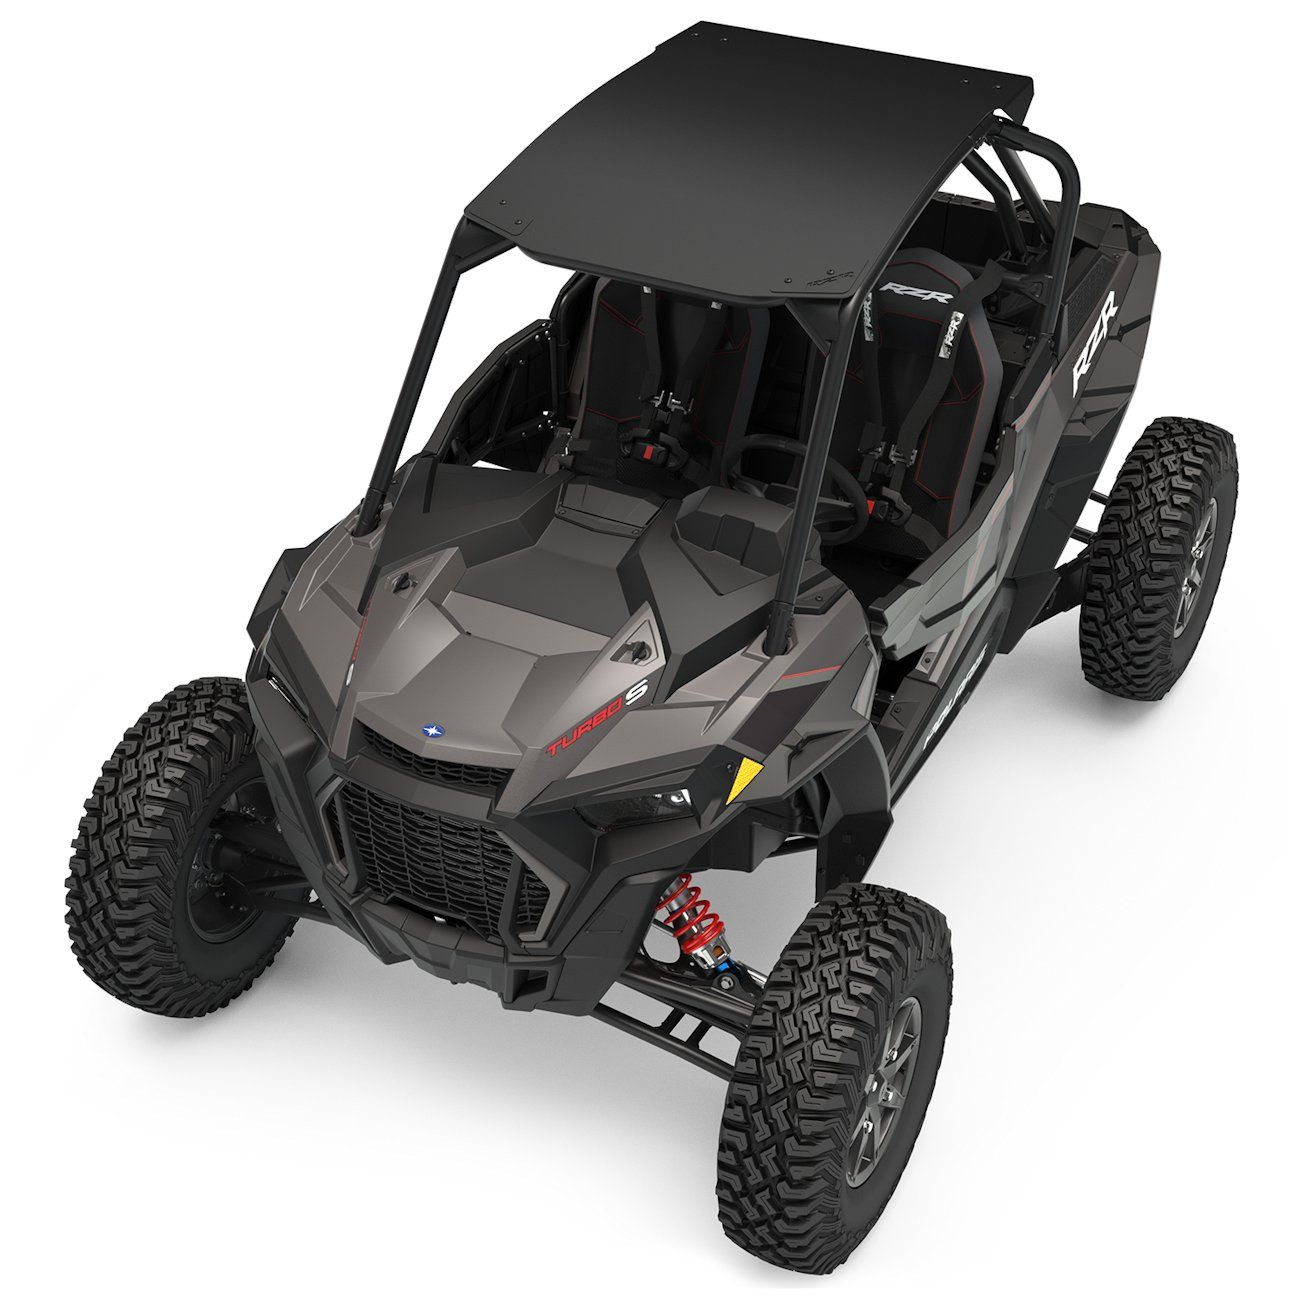 Polaris Rzr Xp Turbo S Aluminum Roof